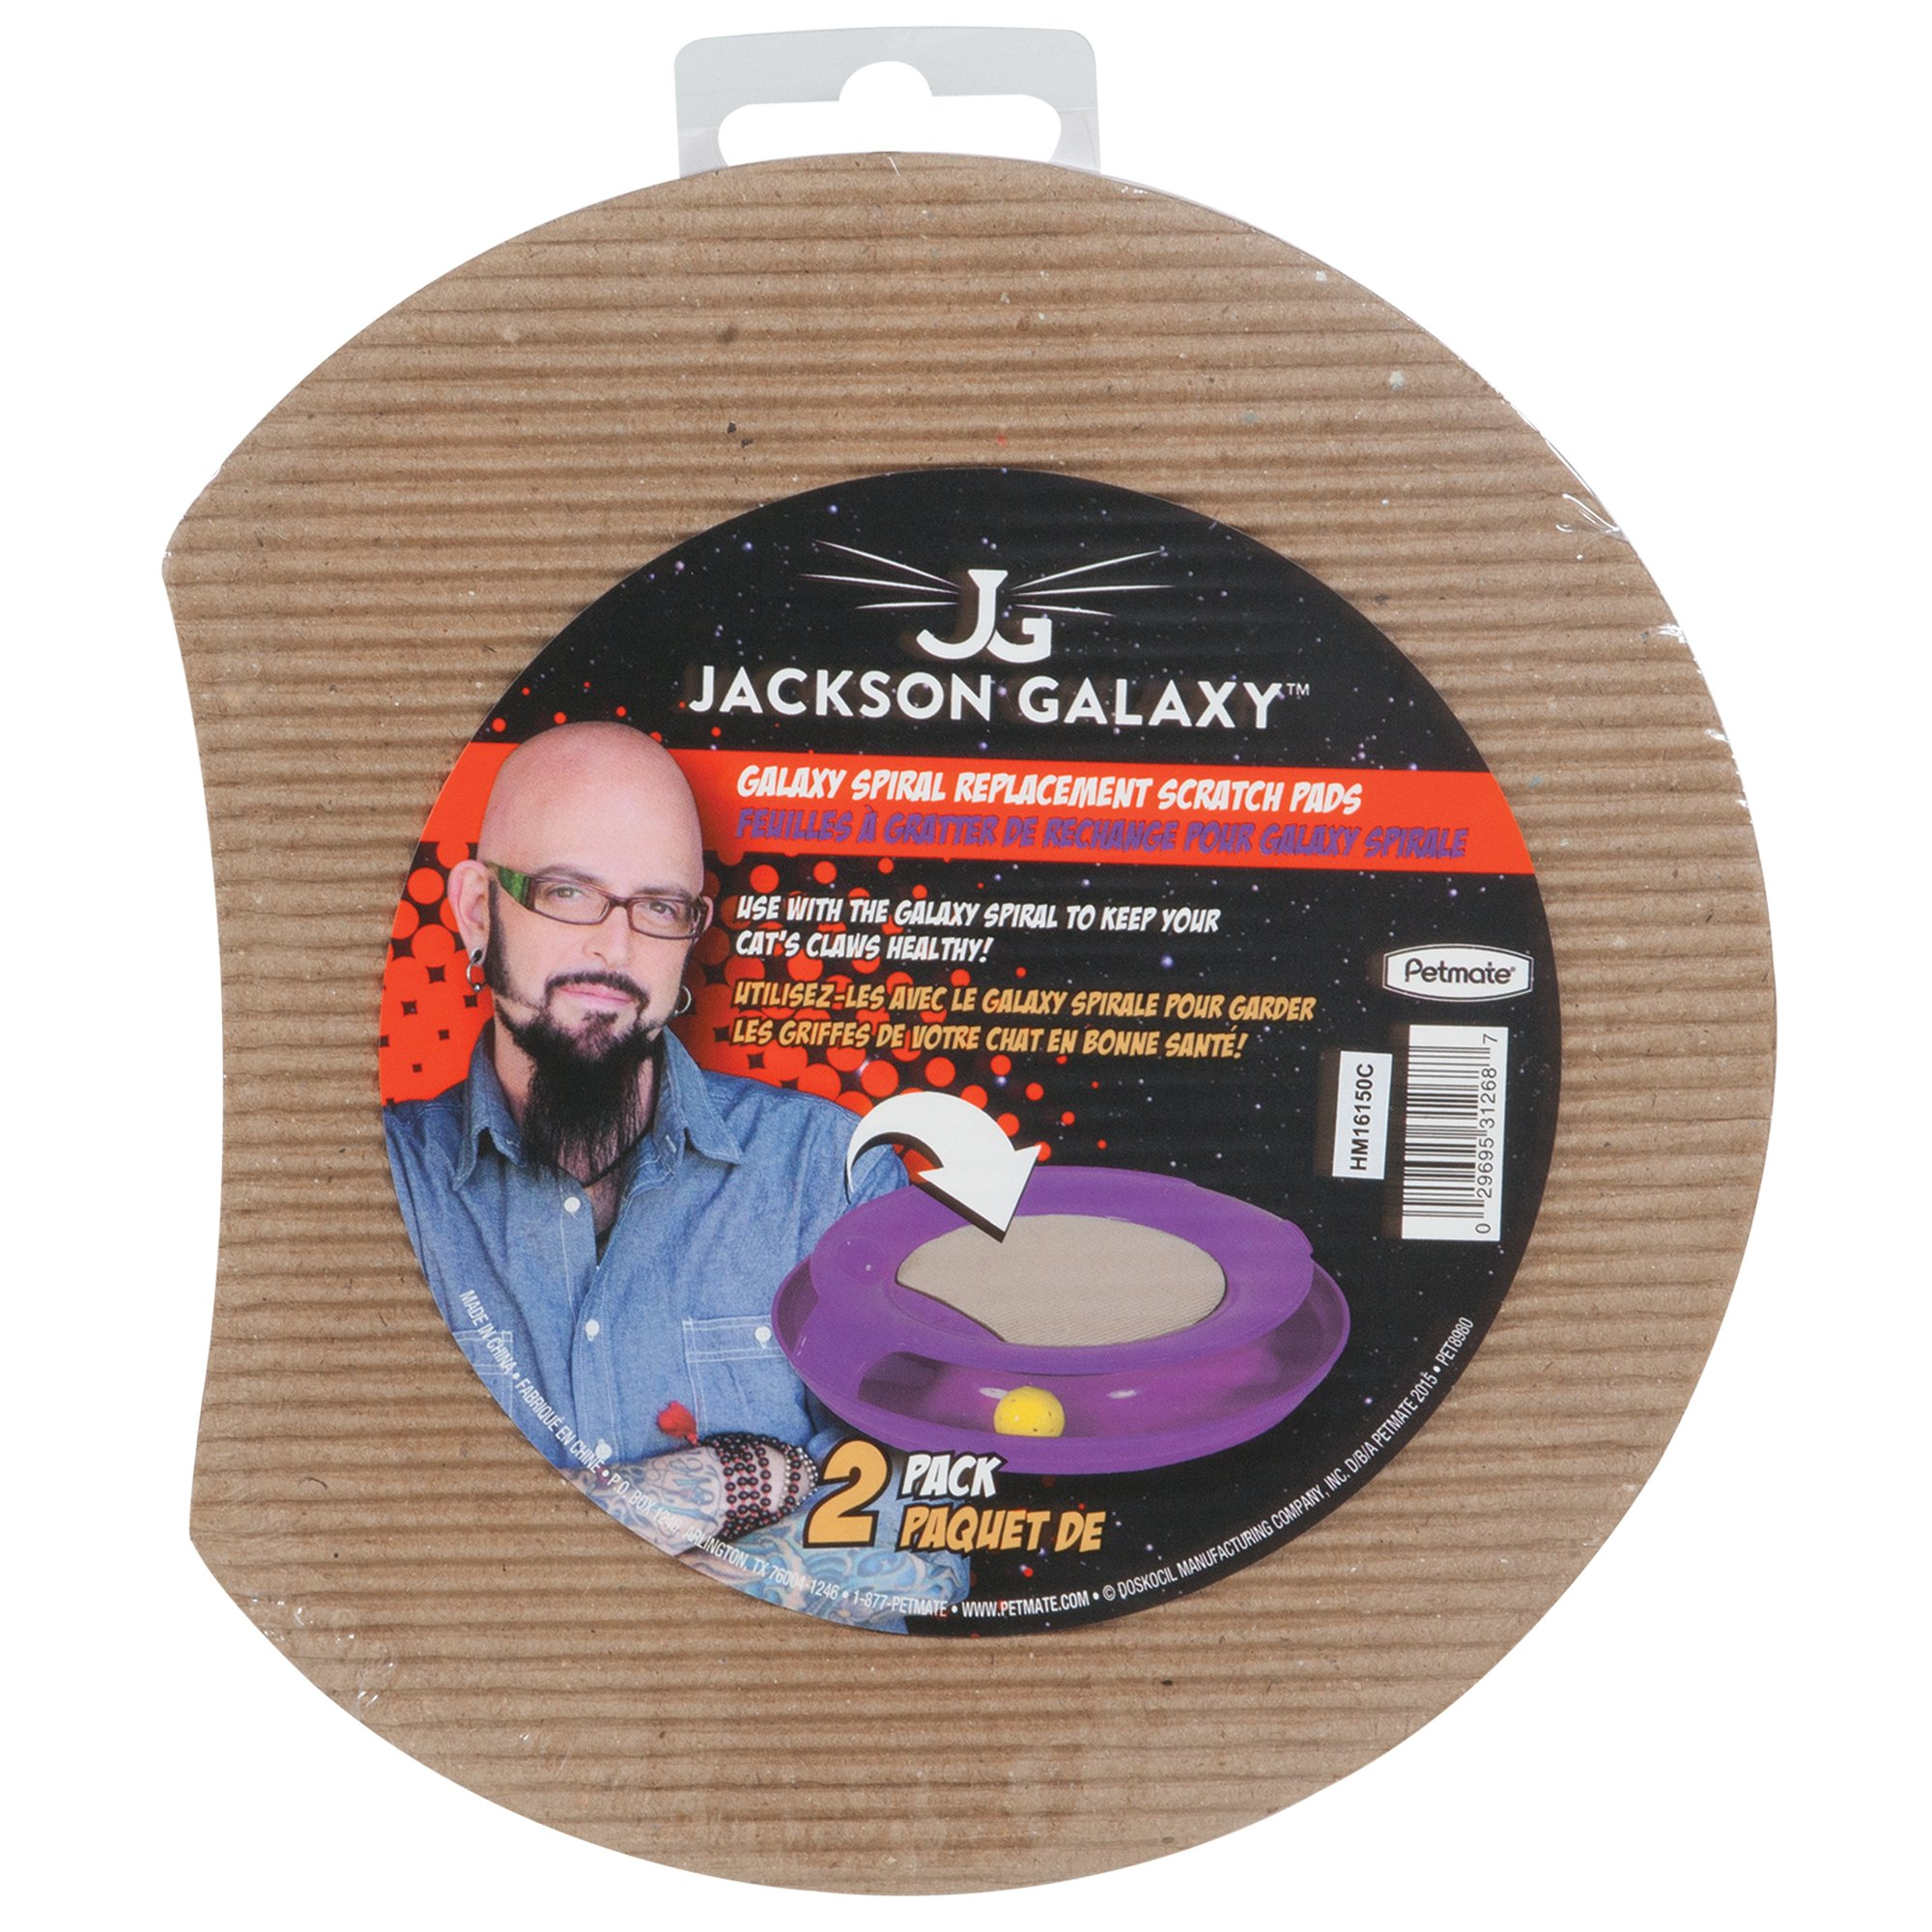 Jackson galaxy spiral corrugate petco for Jackson galaxy phone number